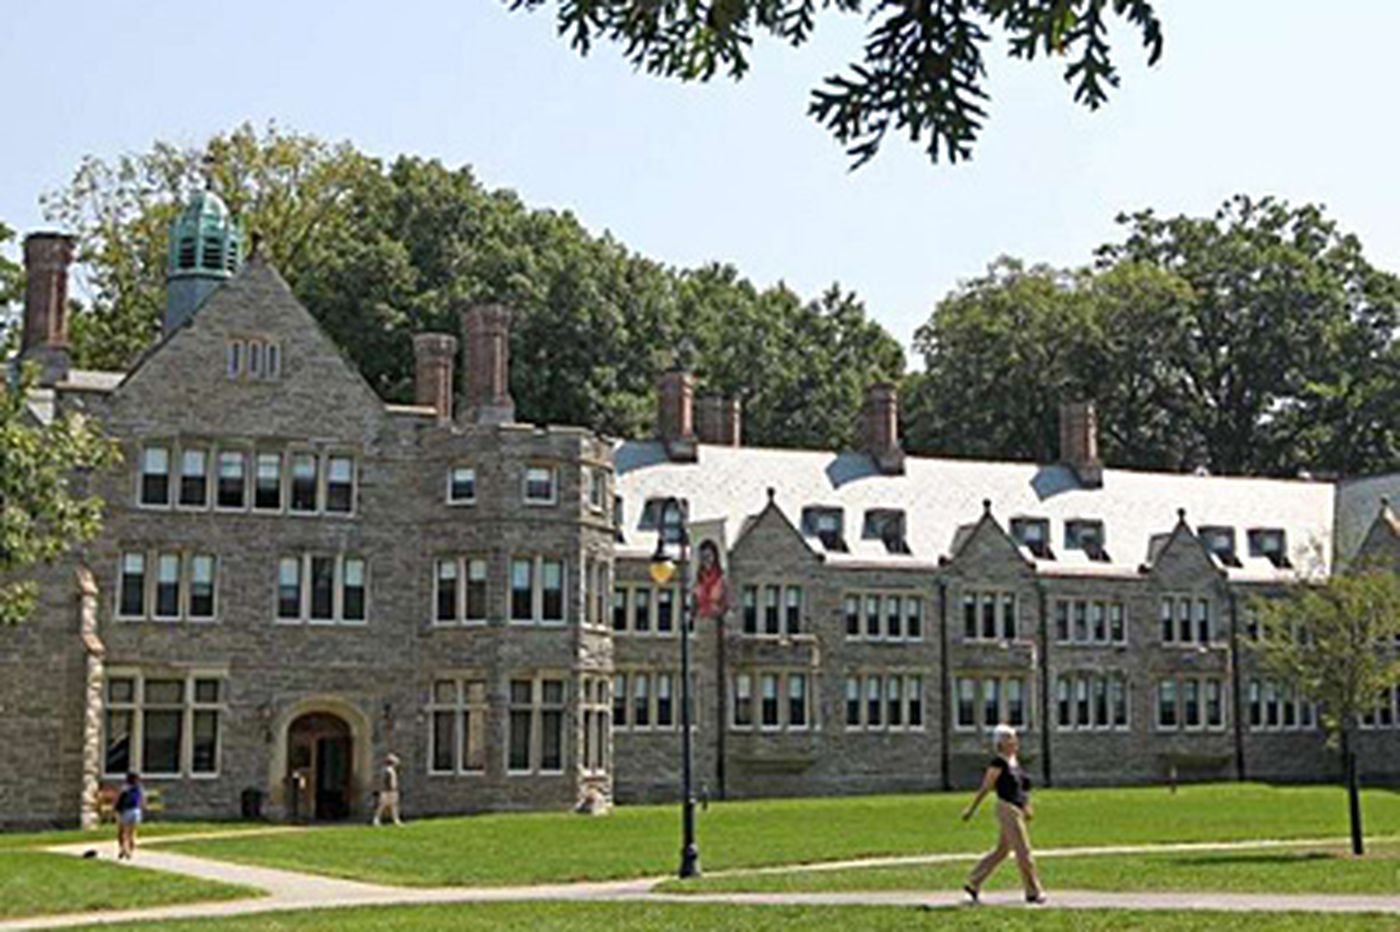 Swarthmore, Bryn Mawr named as top colleges for renewable energy use in U.S.